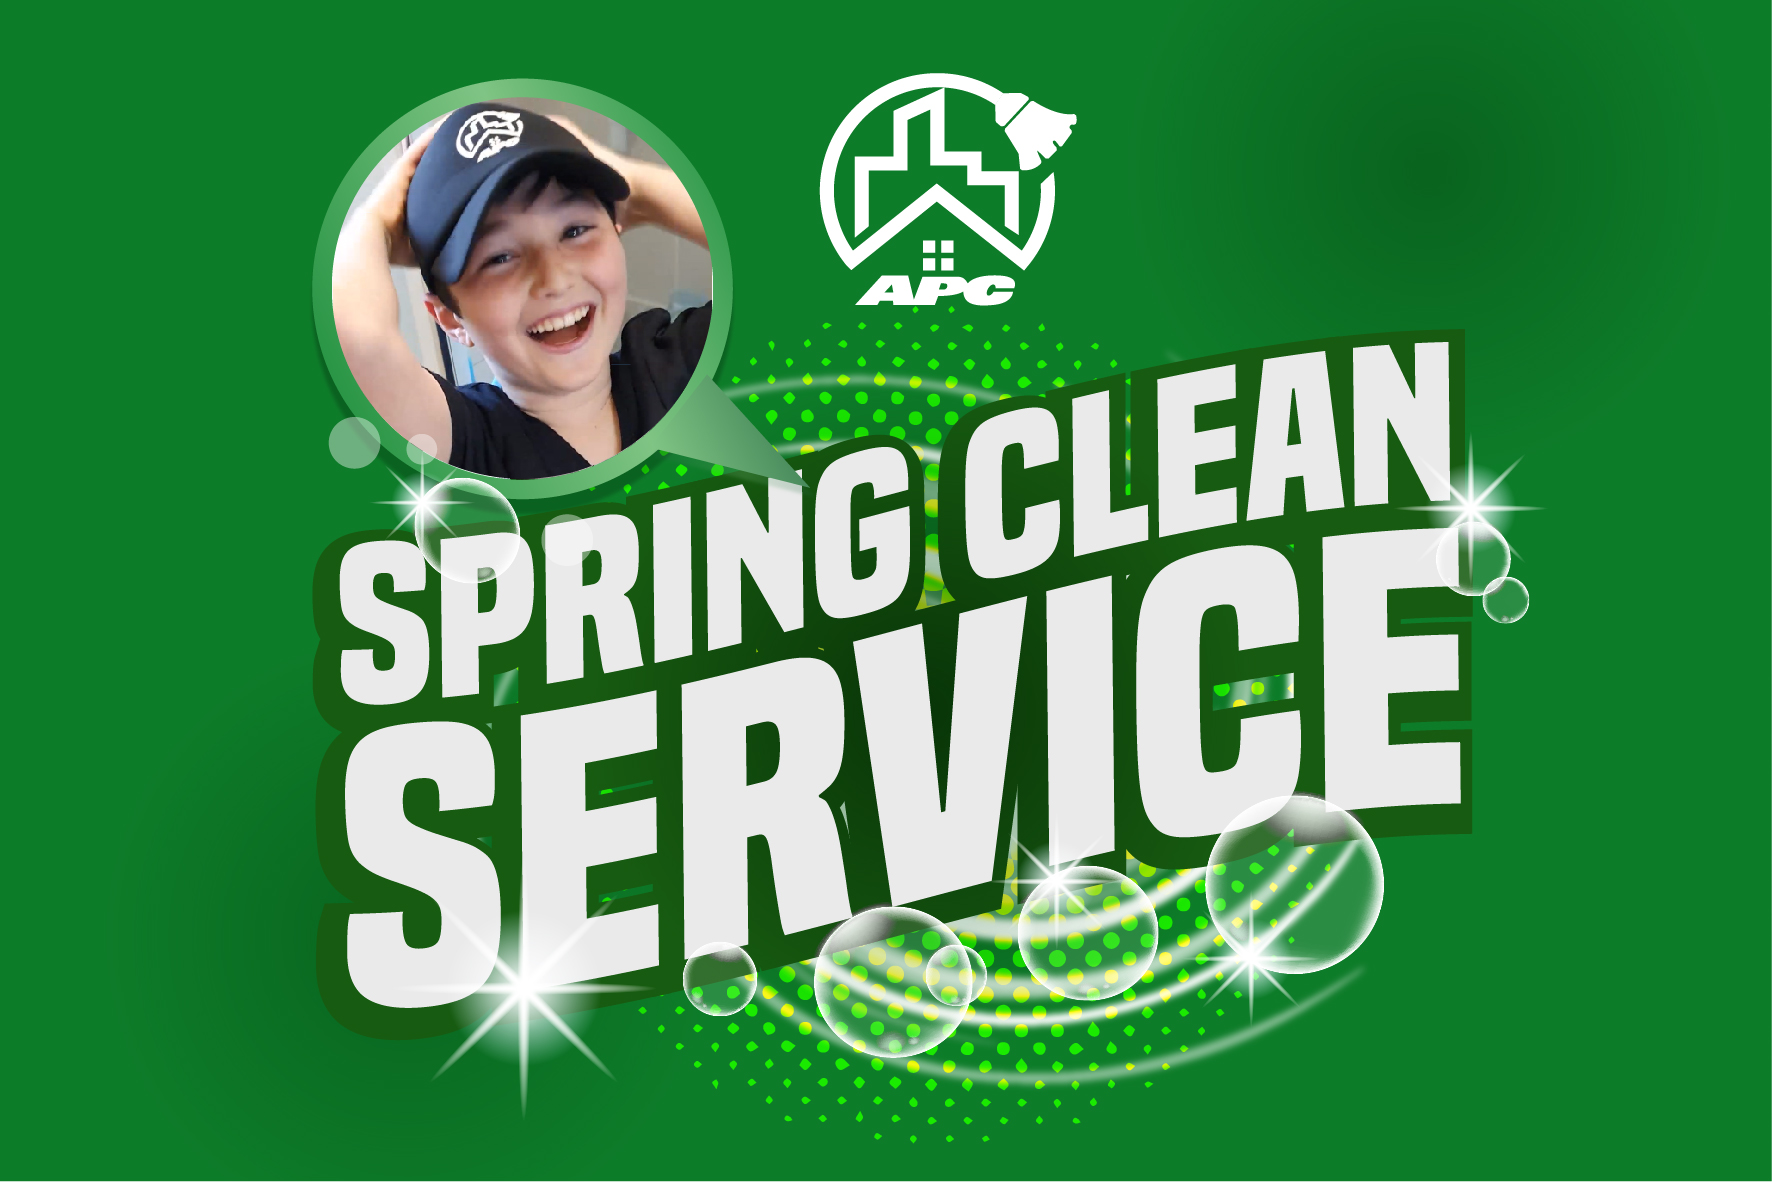 APC Shine Spring Cleaning Services Spring Clean